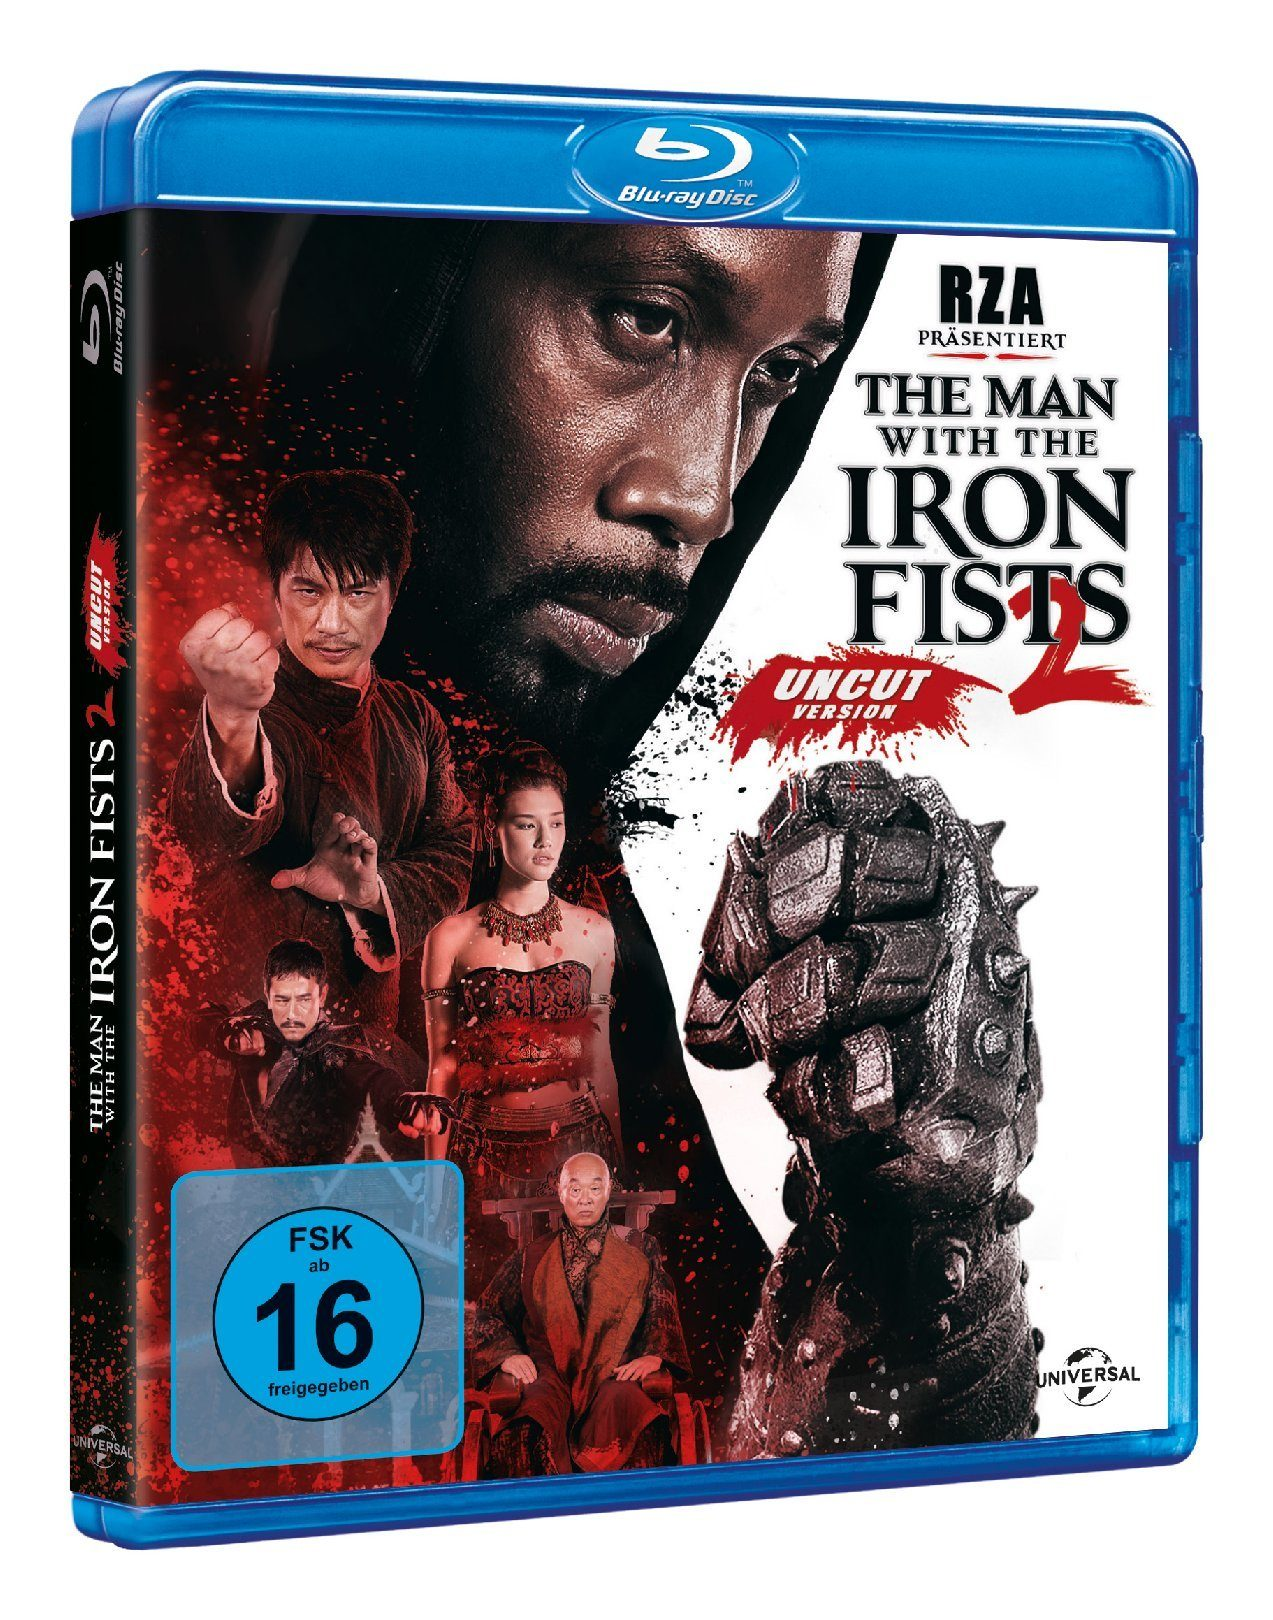 Universal The Man with the Iron Fists 2 (uncut) »Blu-ray«